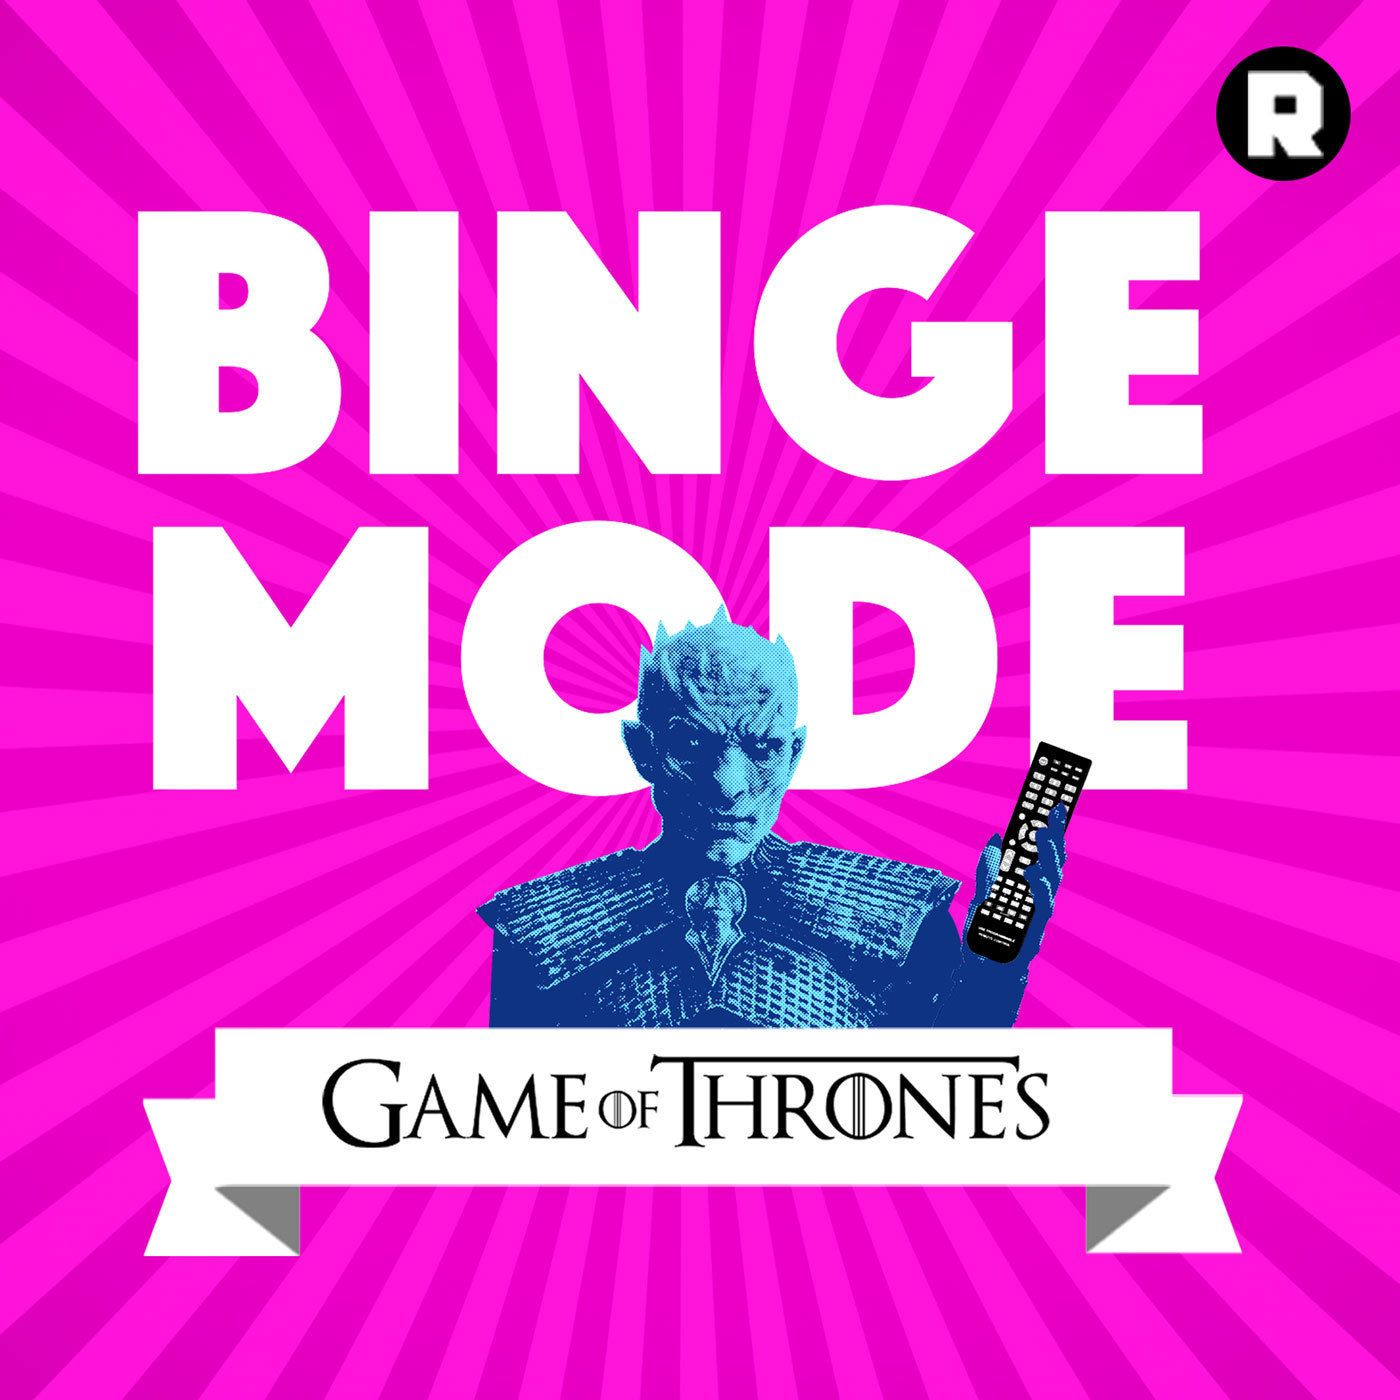 S2E8: The Prince of Winterfell | Game of Thrones